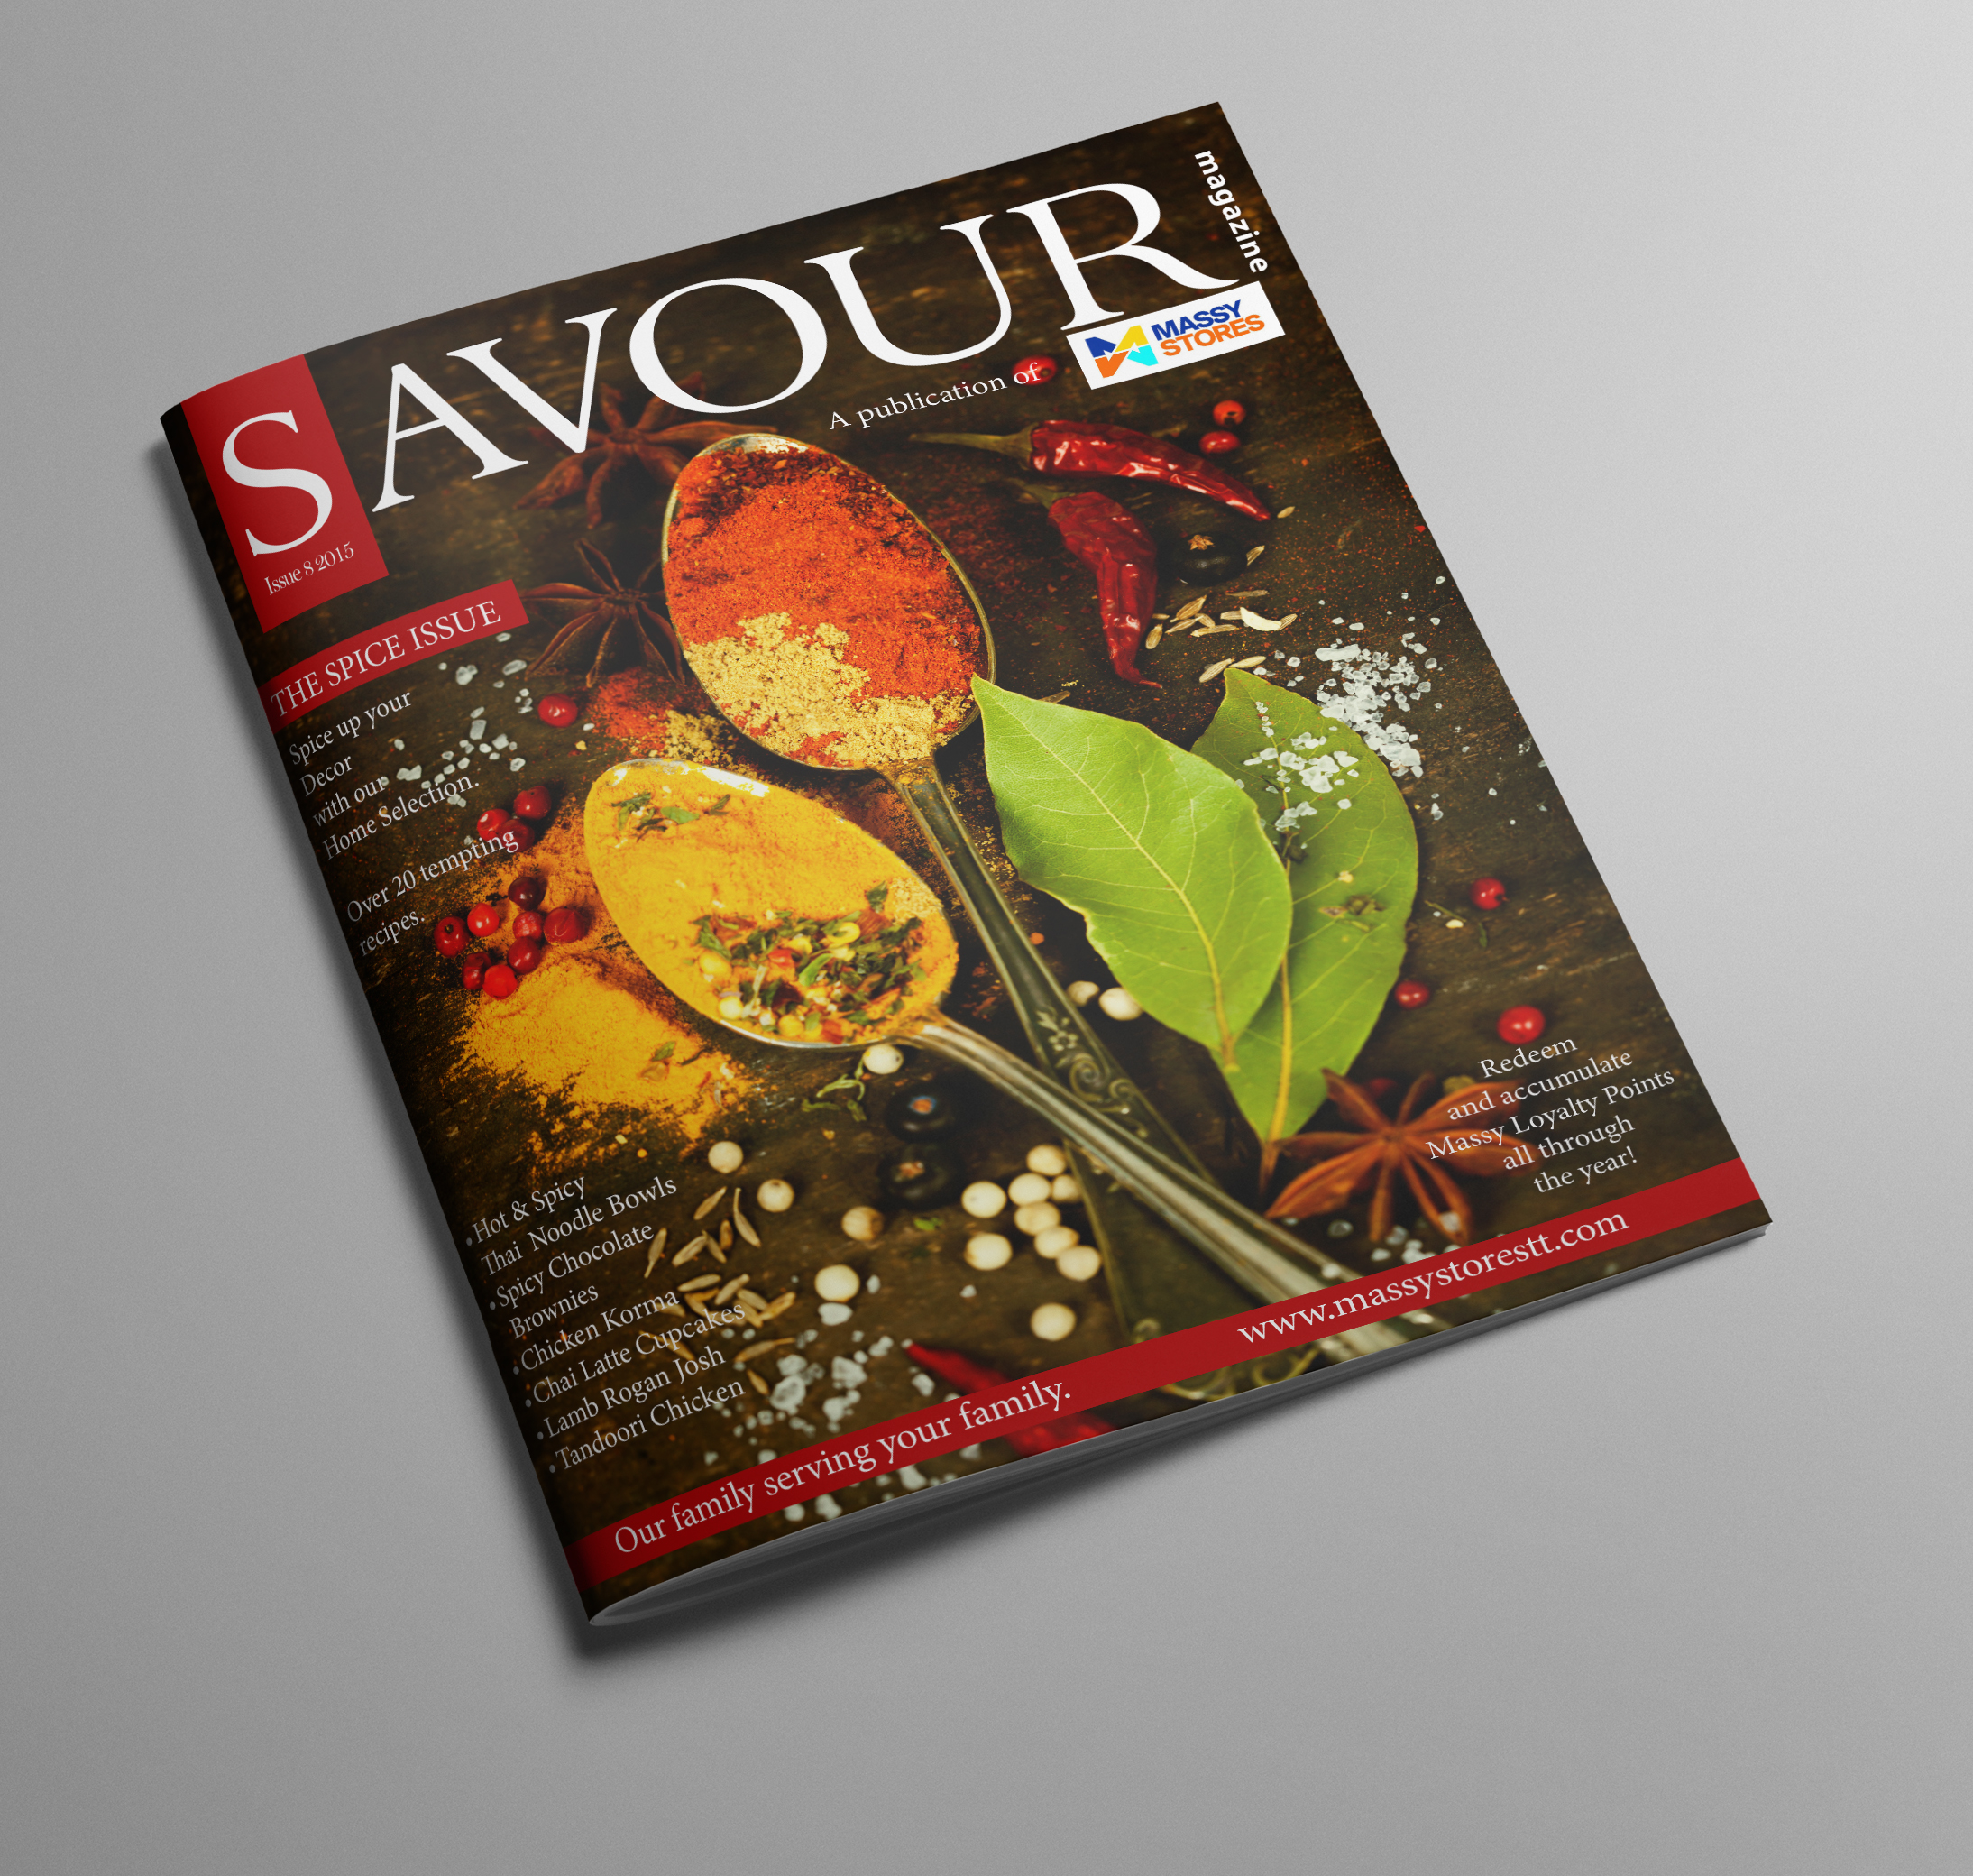 SAVOUR Issue 8 - Client: Phoenix Communications Ltd.Description: Design and Layout Artwork for Savour, the local magazine published by Phoenix Communications for Massy Stores Ltd. Trinidad and Tobago. This magazine features delicious